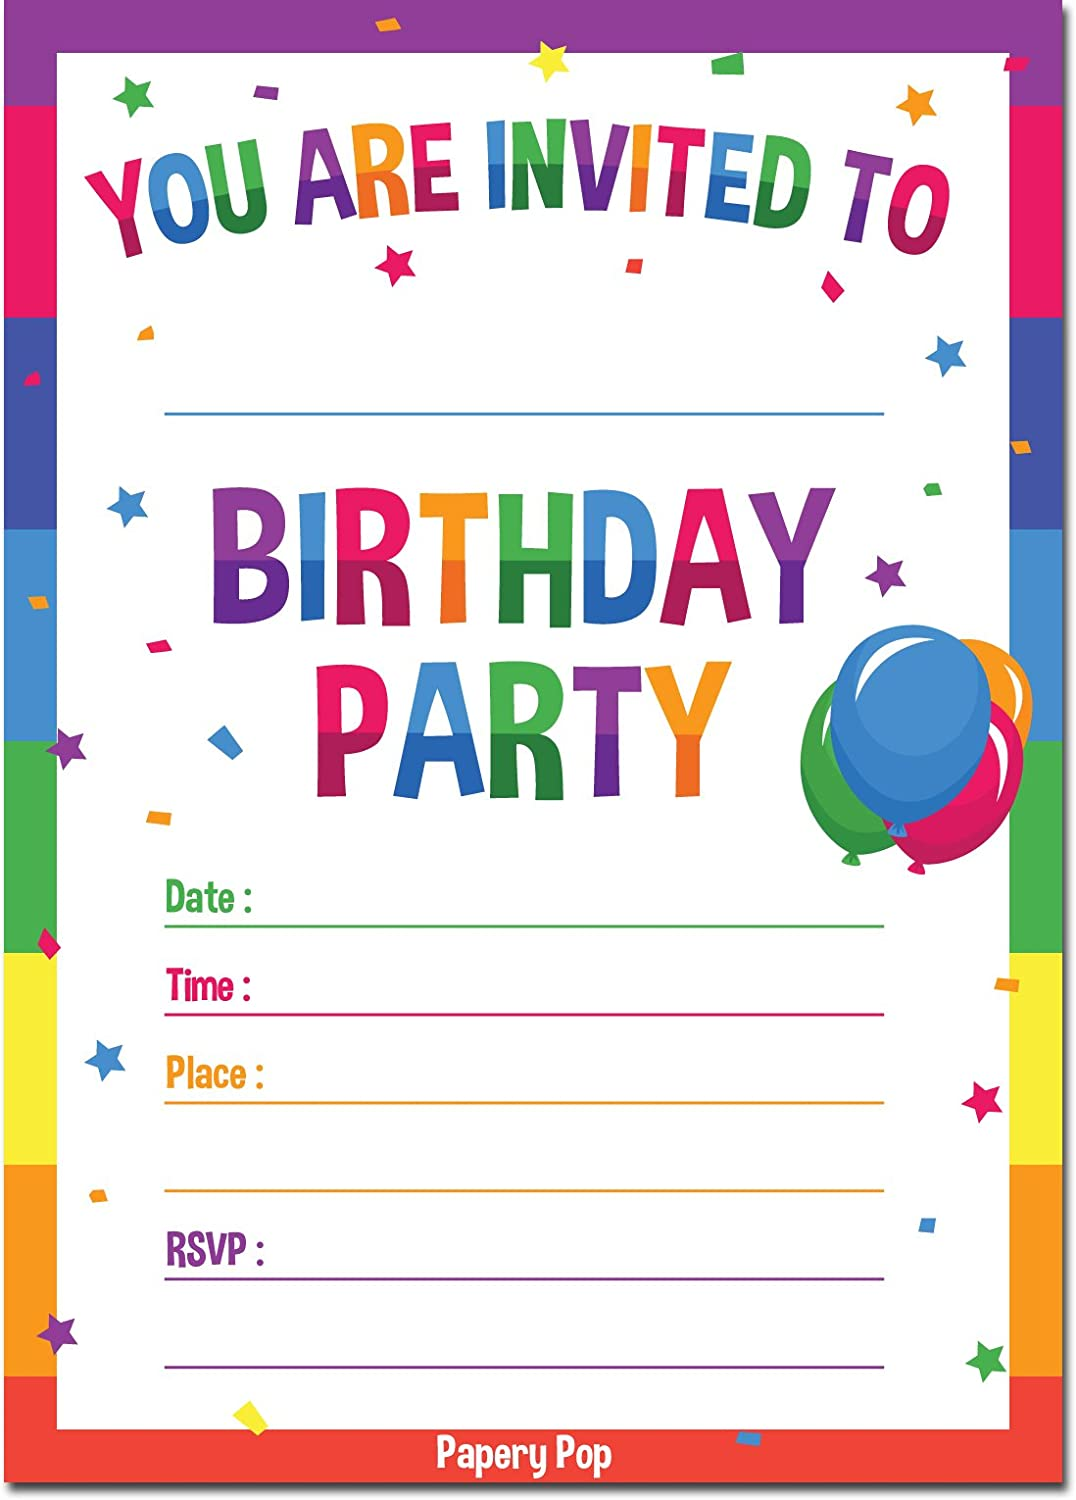 Birthday Invitations With Envelopes 15 Pack Kids Birthday Party Invitations For Boys Or Girls Rainbow